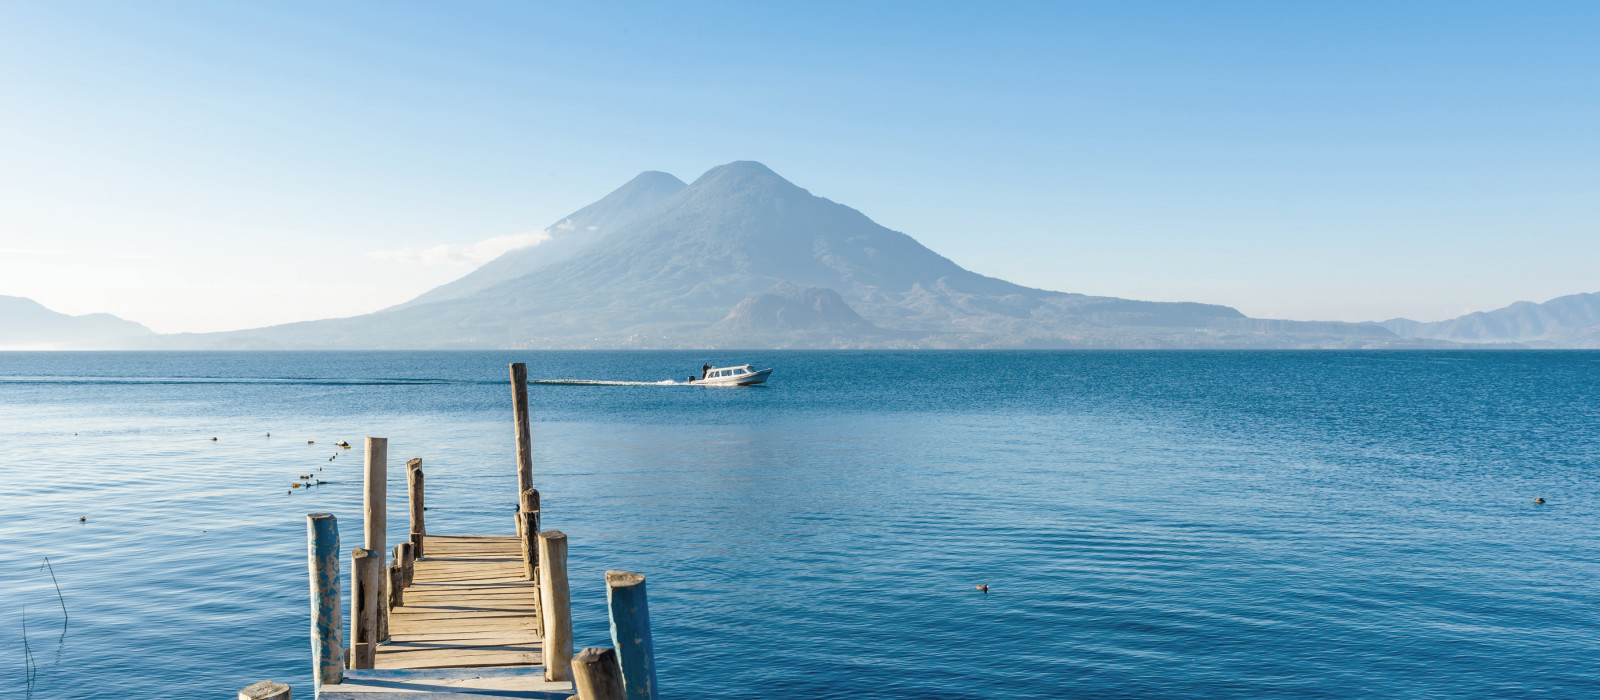 Wooden jetty on Lake Atitlan on the shore in Panajachel, Guatemala. With beautiful landscape of volcanoes landscape